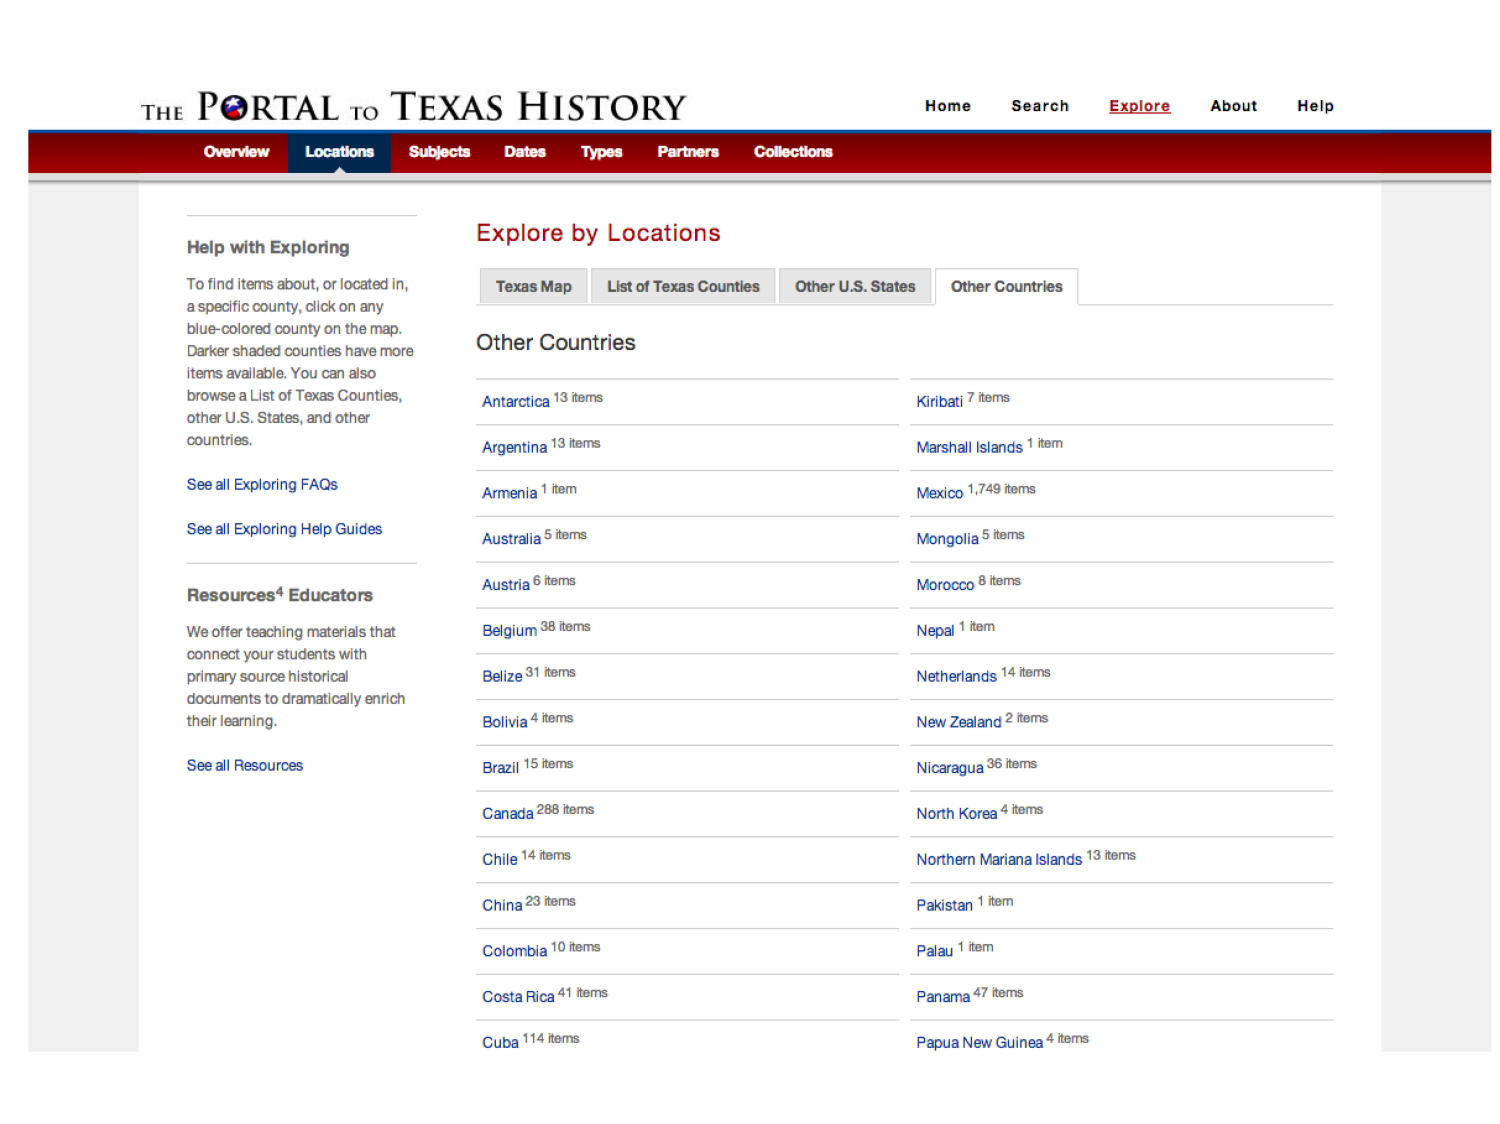 The Portal to Texas History: Technology Overview                                                                                                      [Sequence #]: 46 of 73